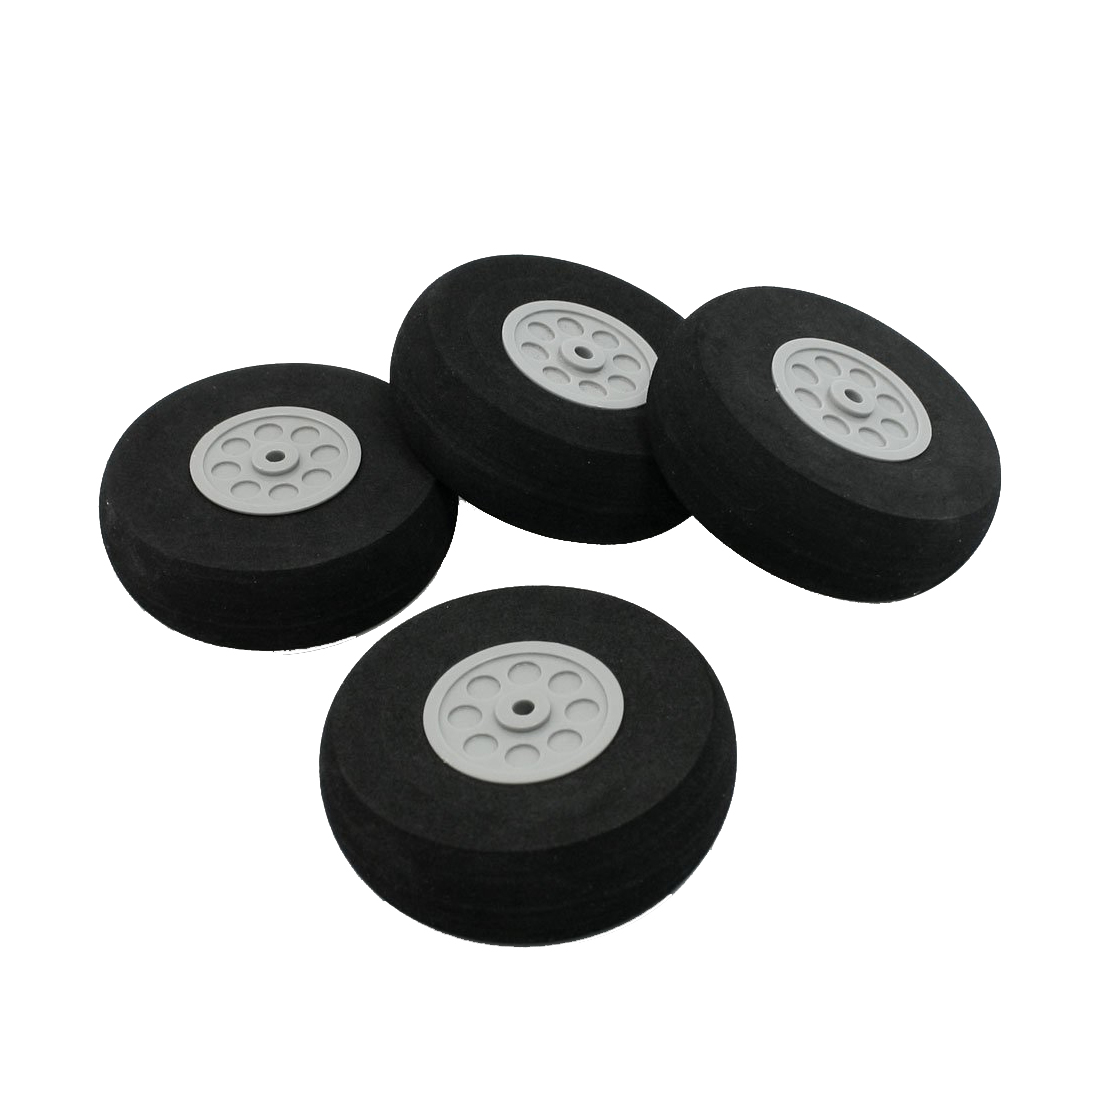 RC Model Plane Aircraft 75mm Dia sponge Wheel Replacement Black Gray 4 Pieces new phoenix 11207 b777 300er pk gii 1 400 skyteam aviation indonesia commercial jetliners plane model hobby